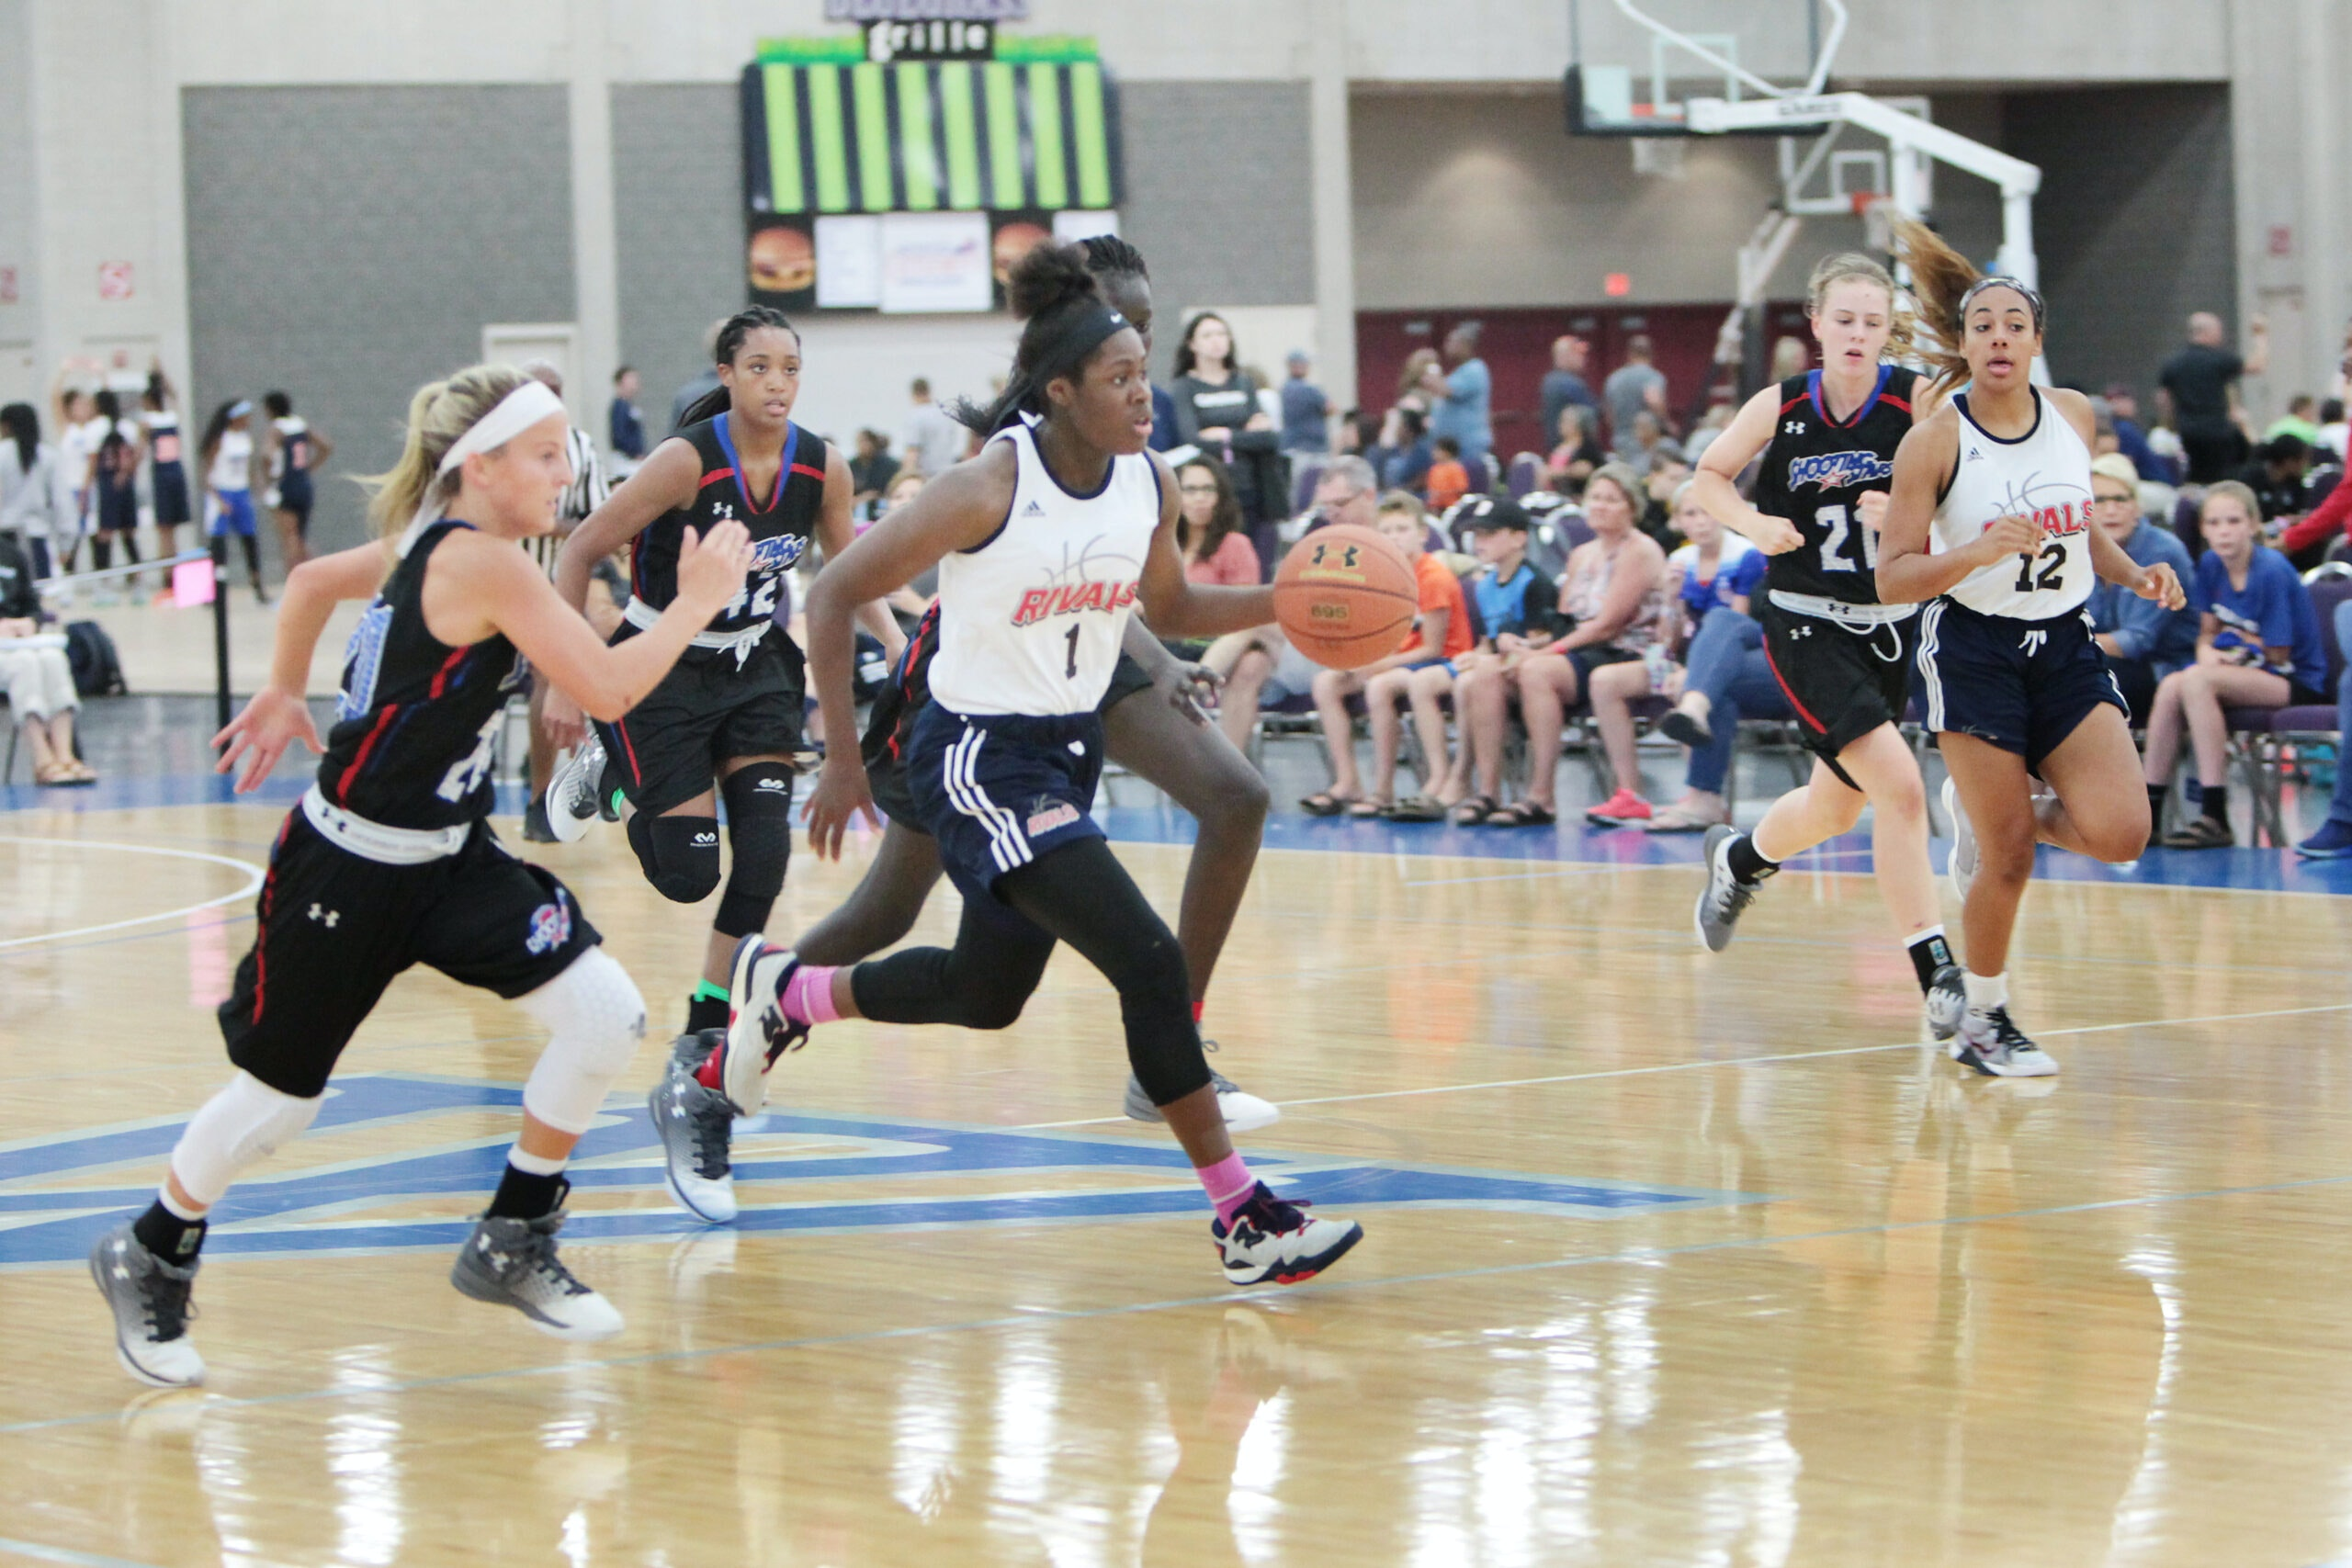 Youth Basketball Tournaments take over the Kentucky Exposition Center